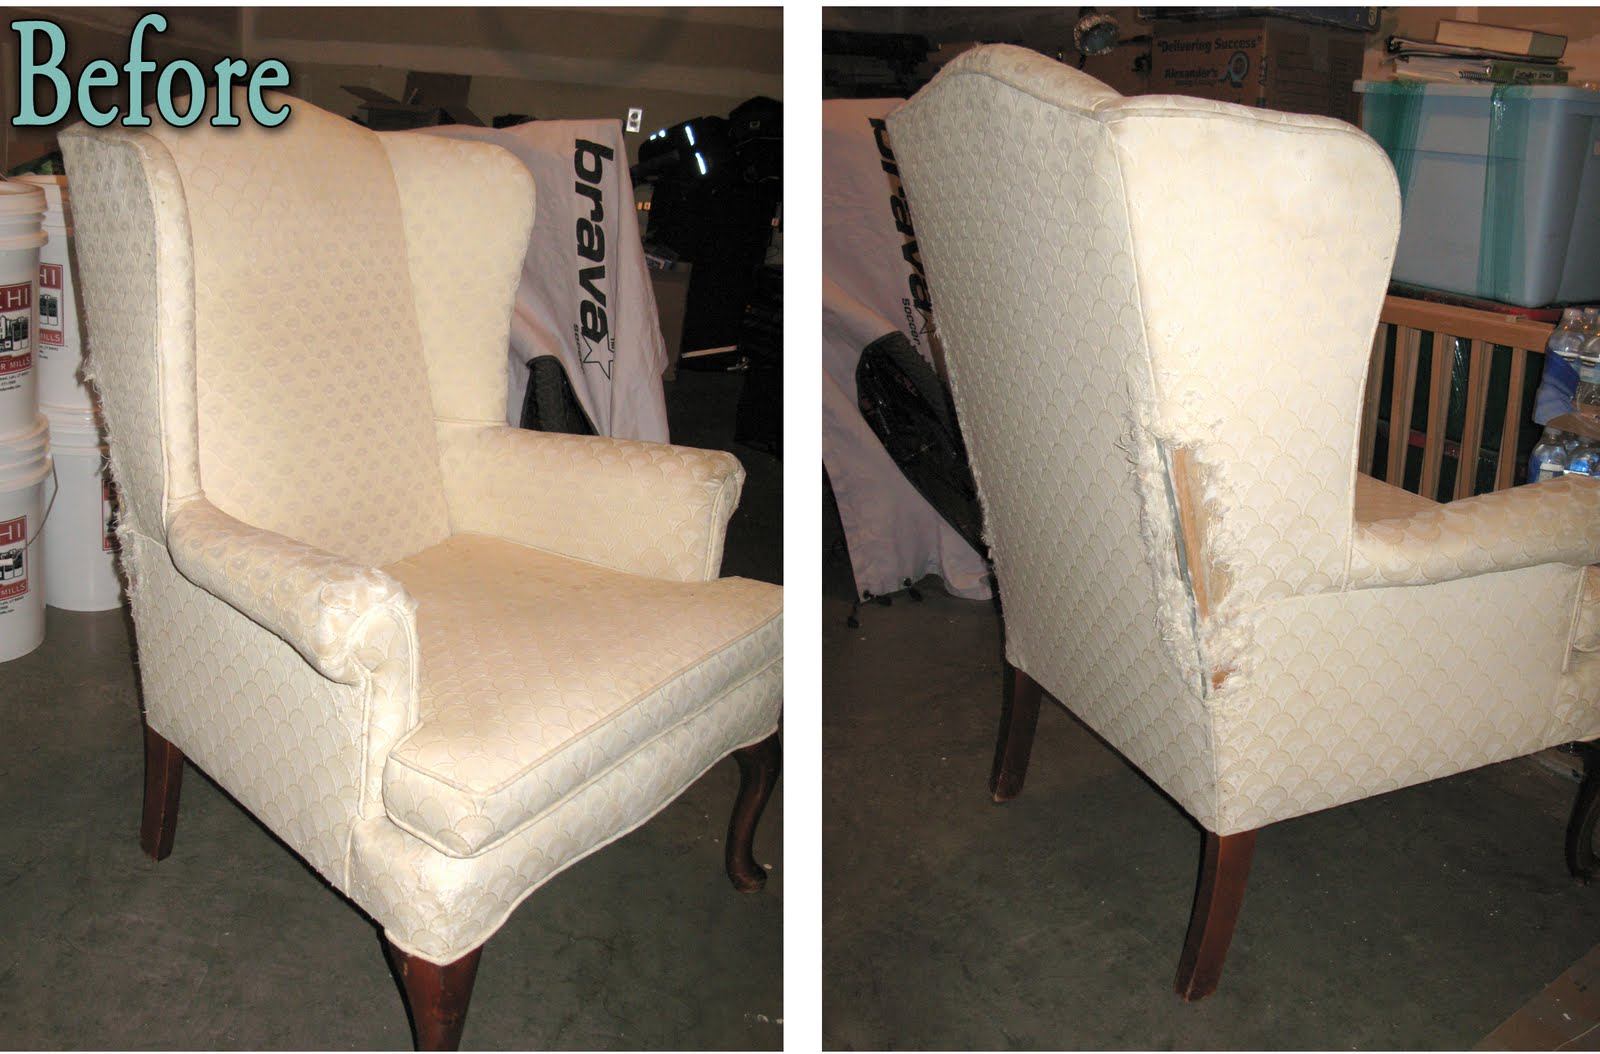 Beau Believe It Or Not, Taking Apart The Chair Is The Most Tedious, Dirtiest,  Time Consuming Part Of Reupholstering. You Will Most Definitely Ruin Your  Manicure, ...